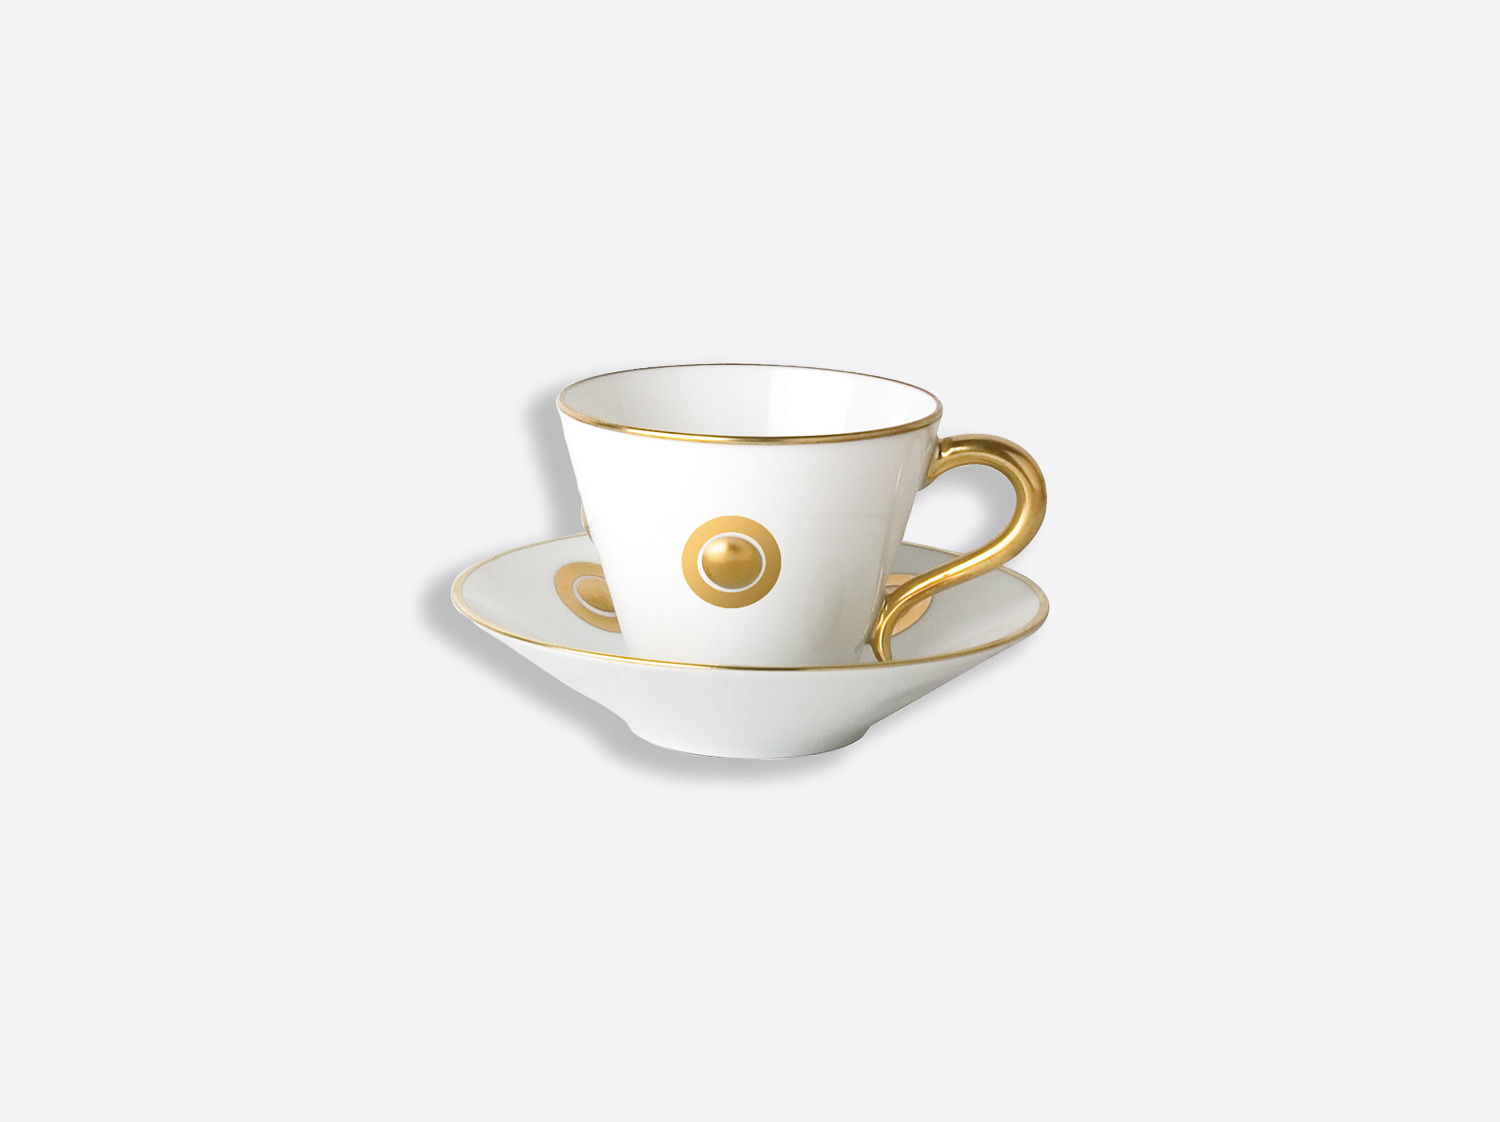 China Espresso cup and saucer 13 cl of the collection Ithaque or | Bernardaud